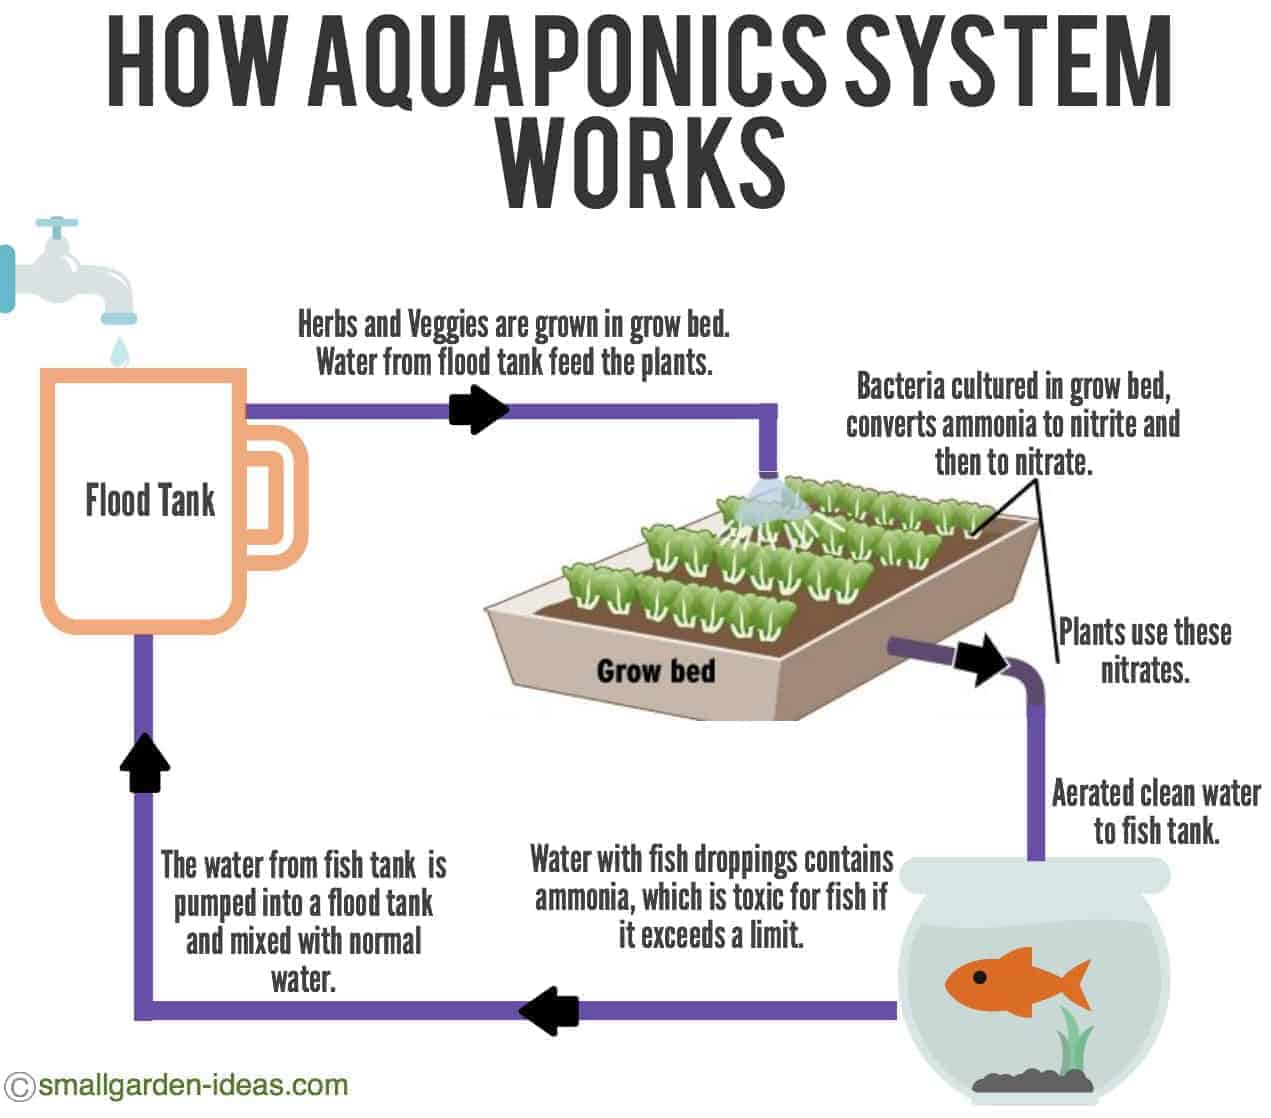 Aquaponics Systems For Indoor Gardening Small Garden Ideas Make A Block Diagram How Aquaponic System Works